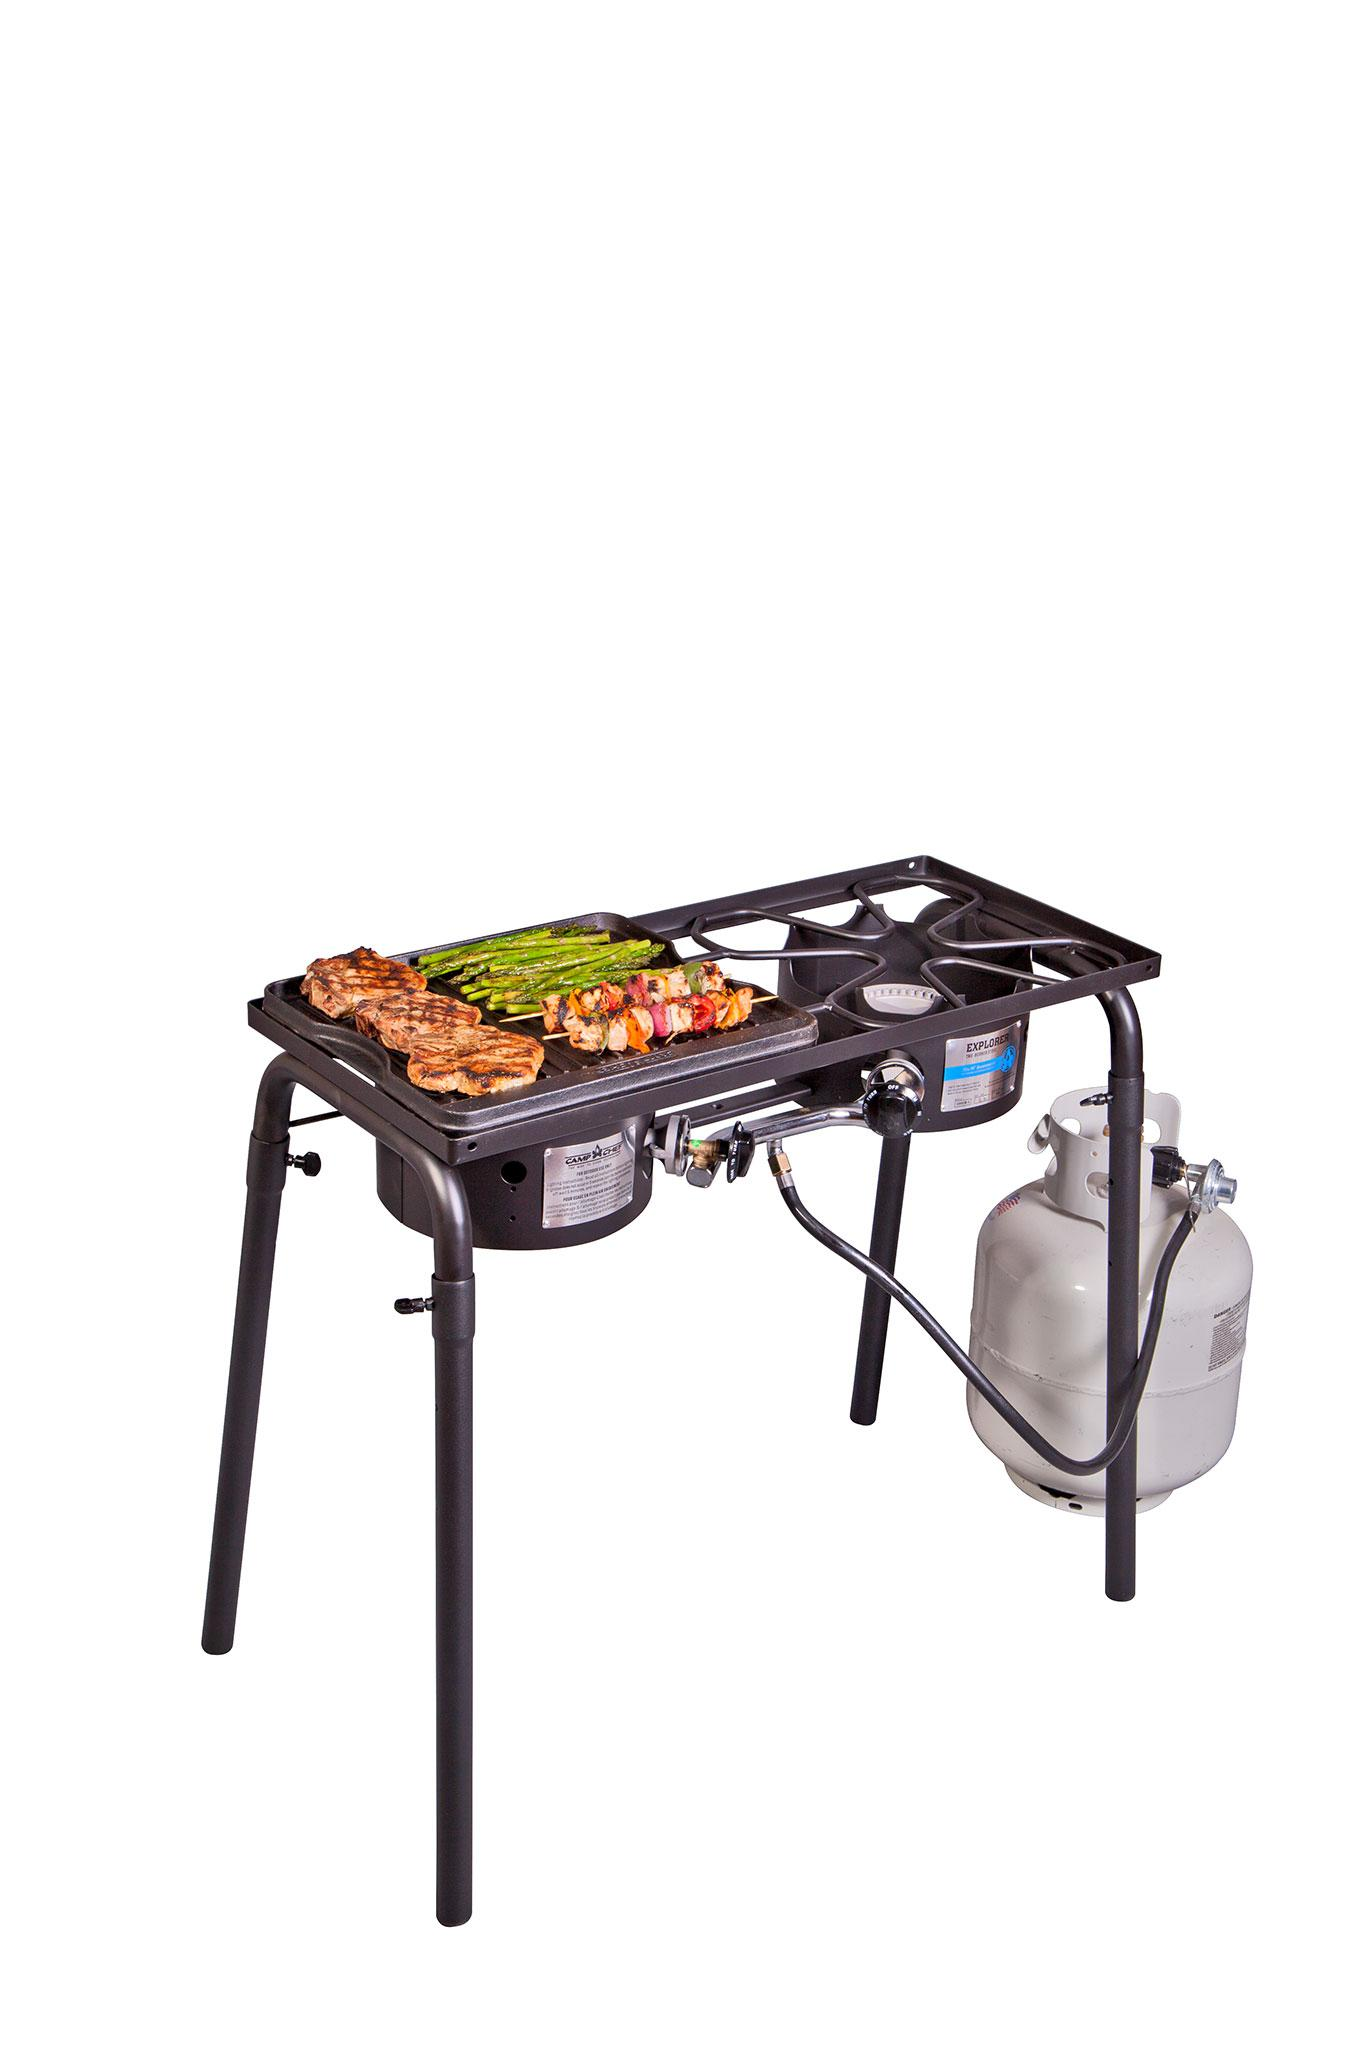 Amazon.com: Camp Chef CGG16B parrilla de hierro fundido pre ...